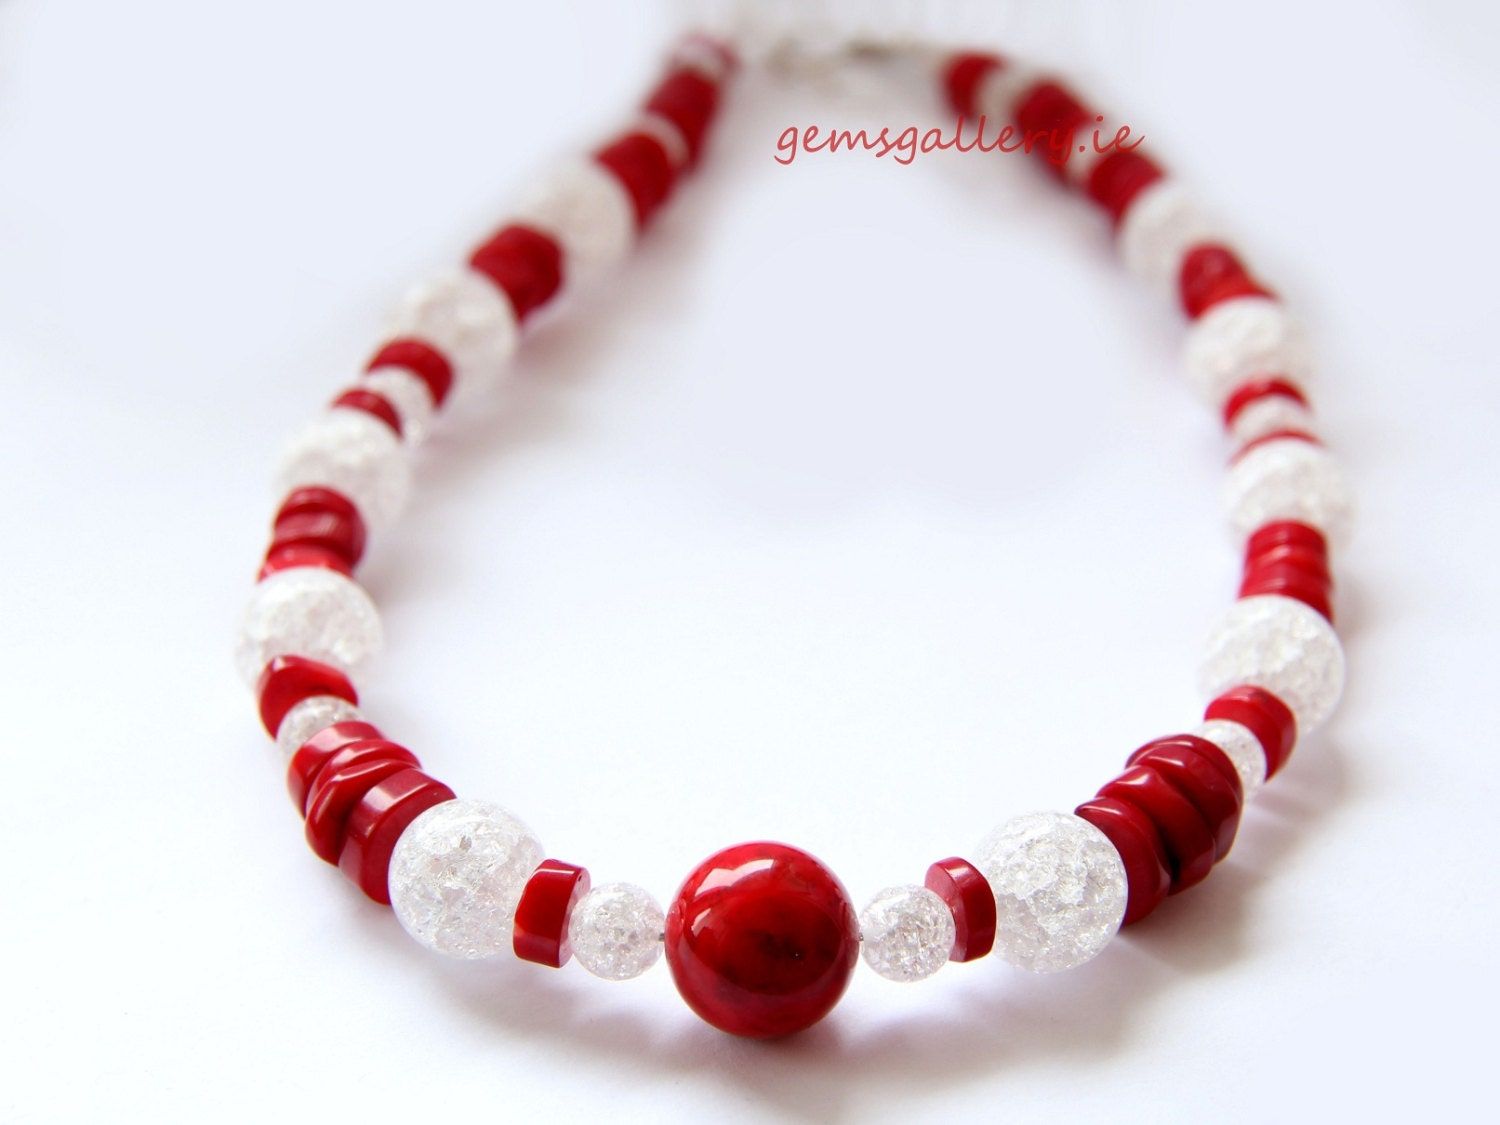 Red Coral, White Crackle Glass & Sterling Silver Necklace - gemsgallery